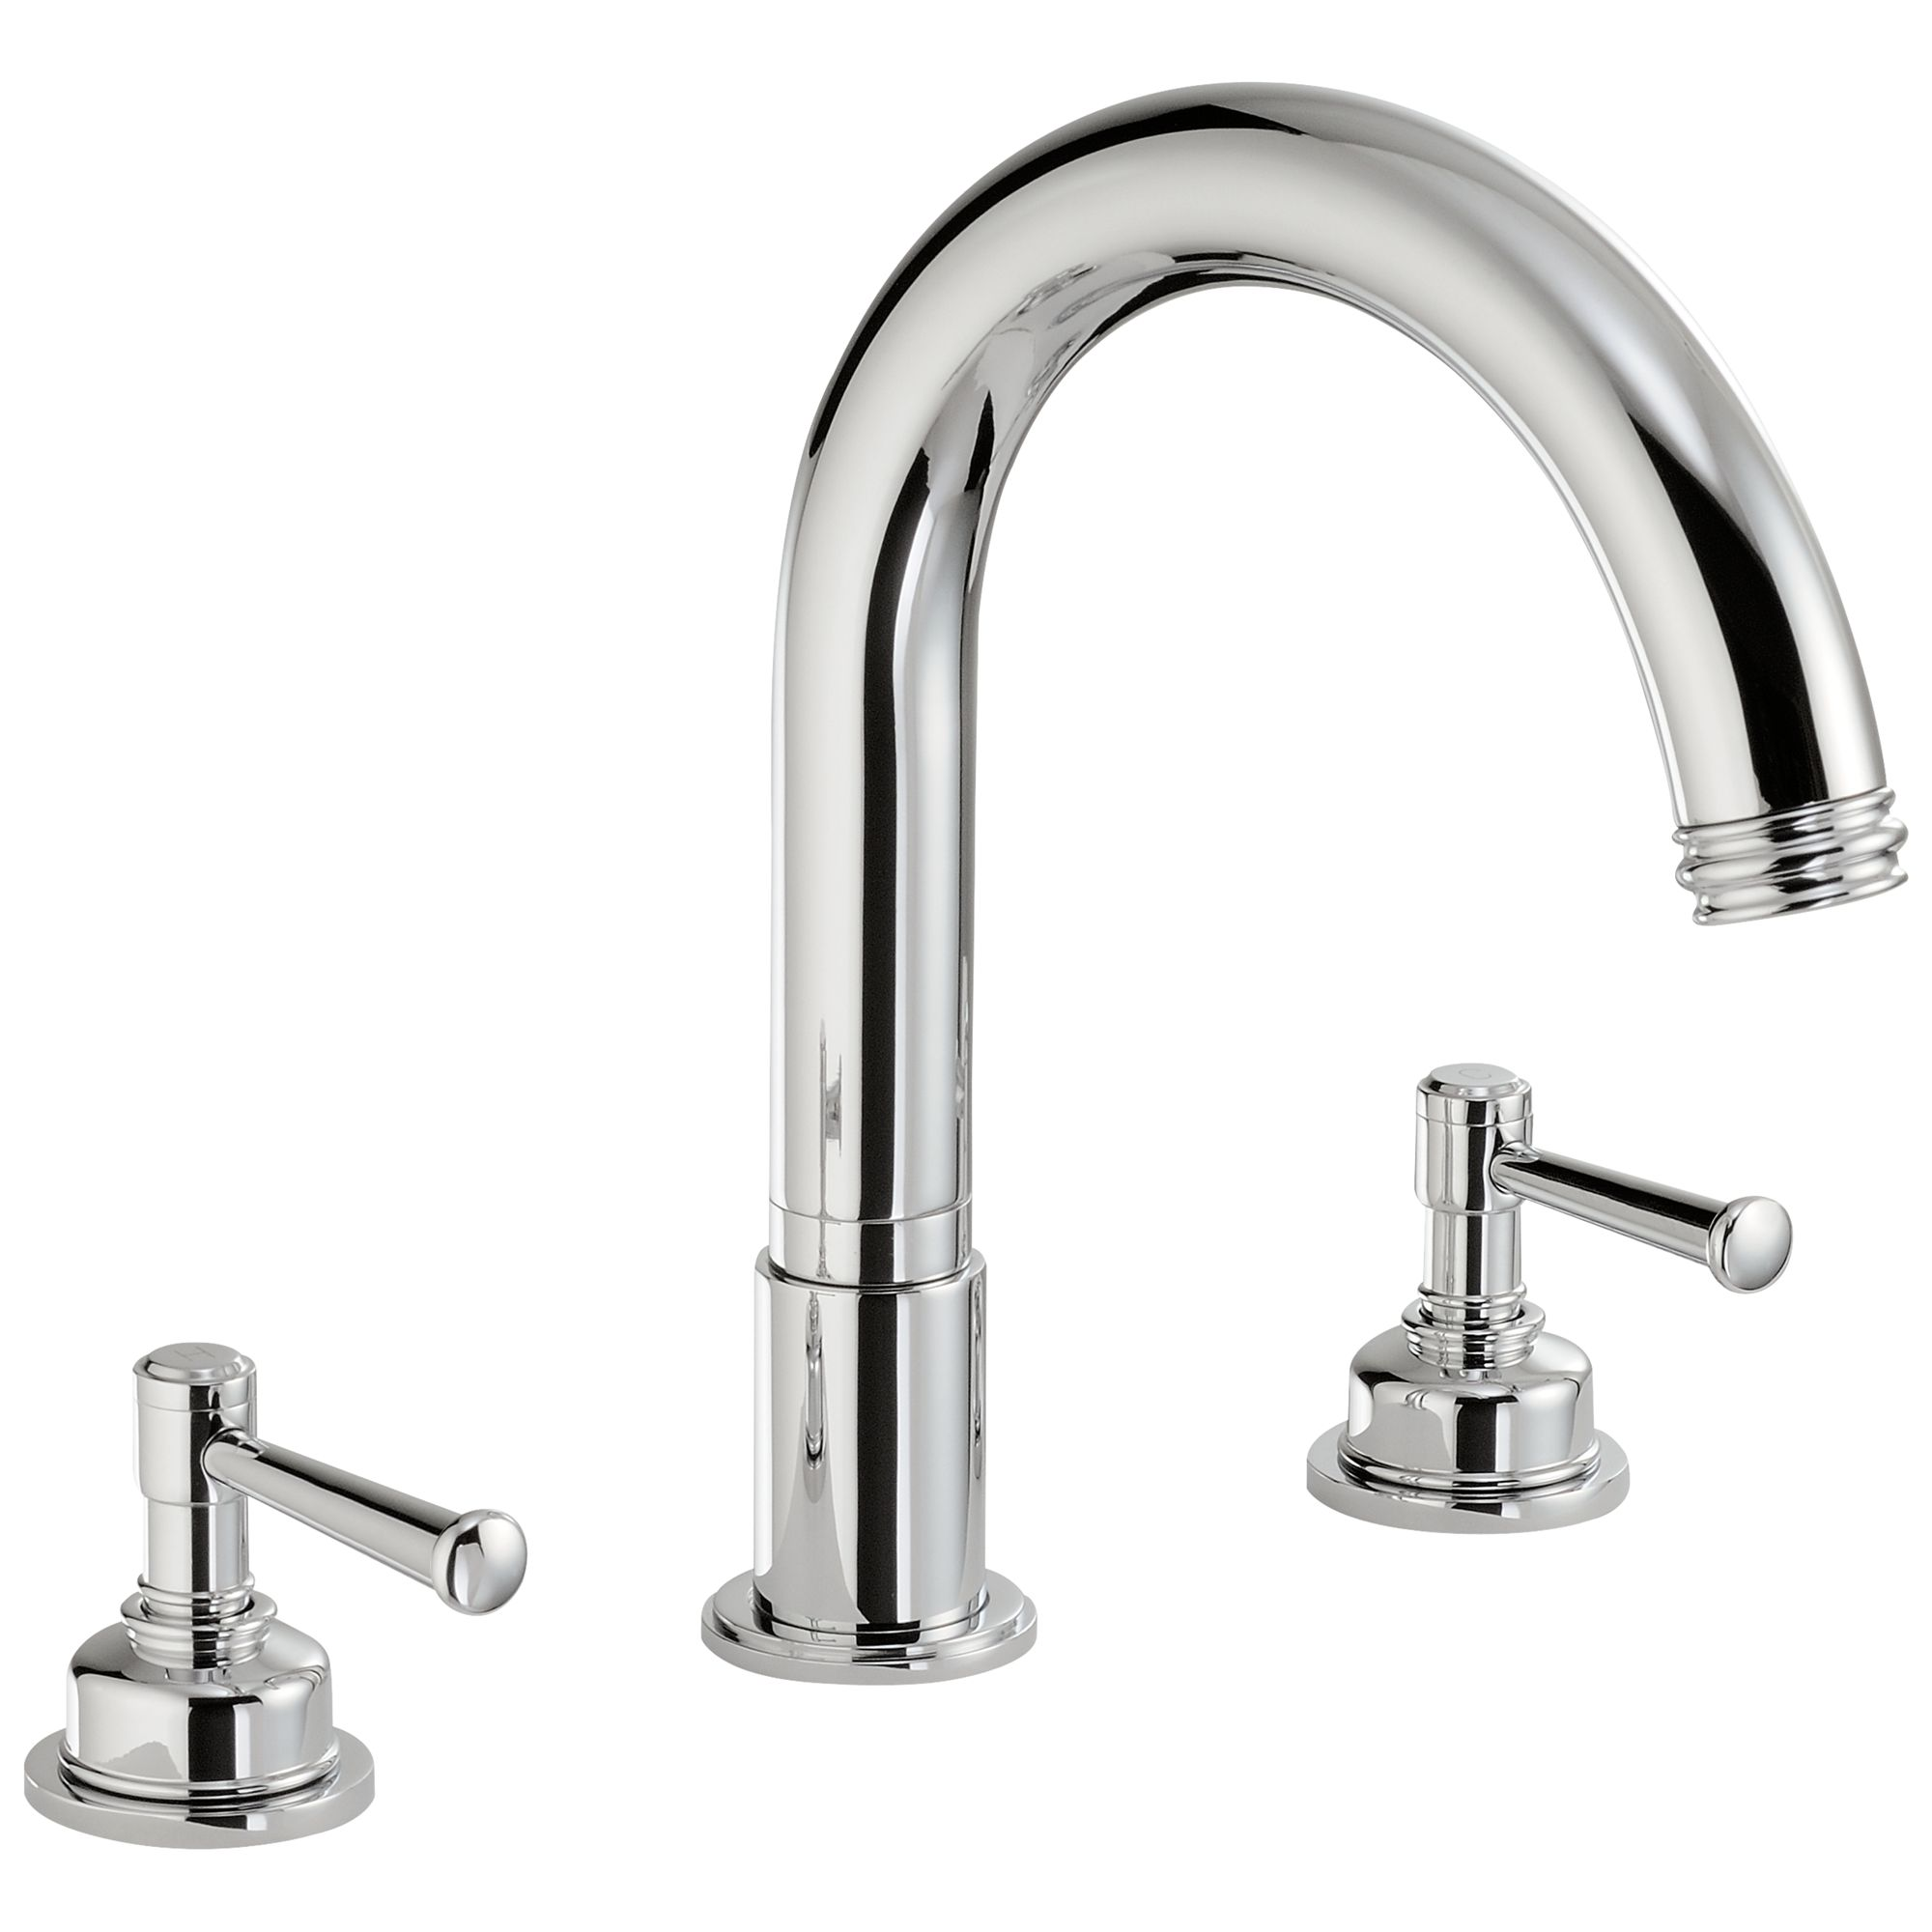 Abode Abode Gallant Deck Mounted 3TH Bath Mixer Tap